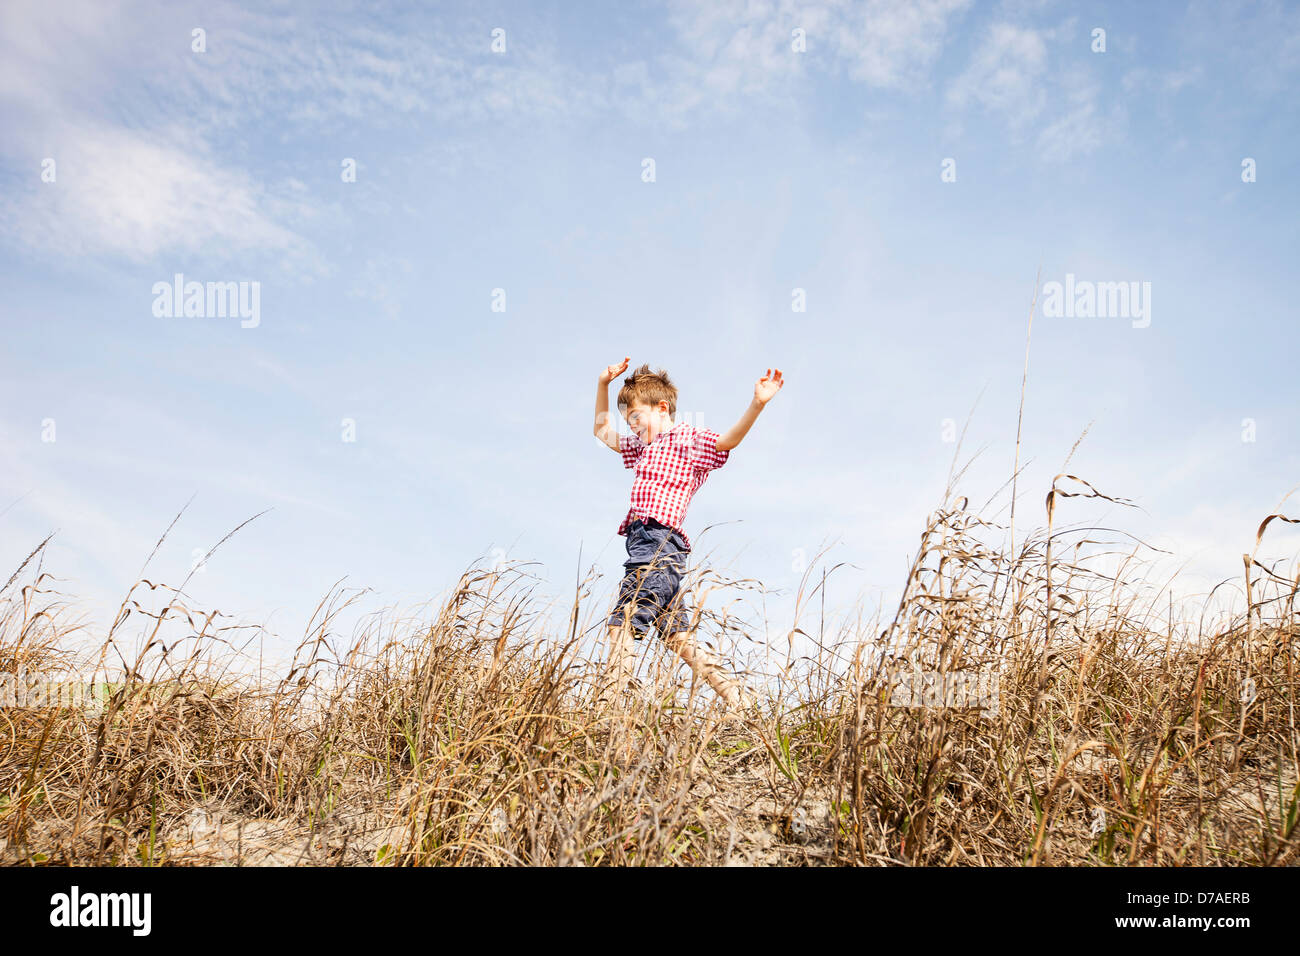 child running through dunes - Stock Image